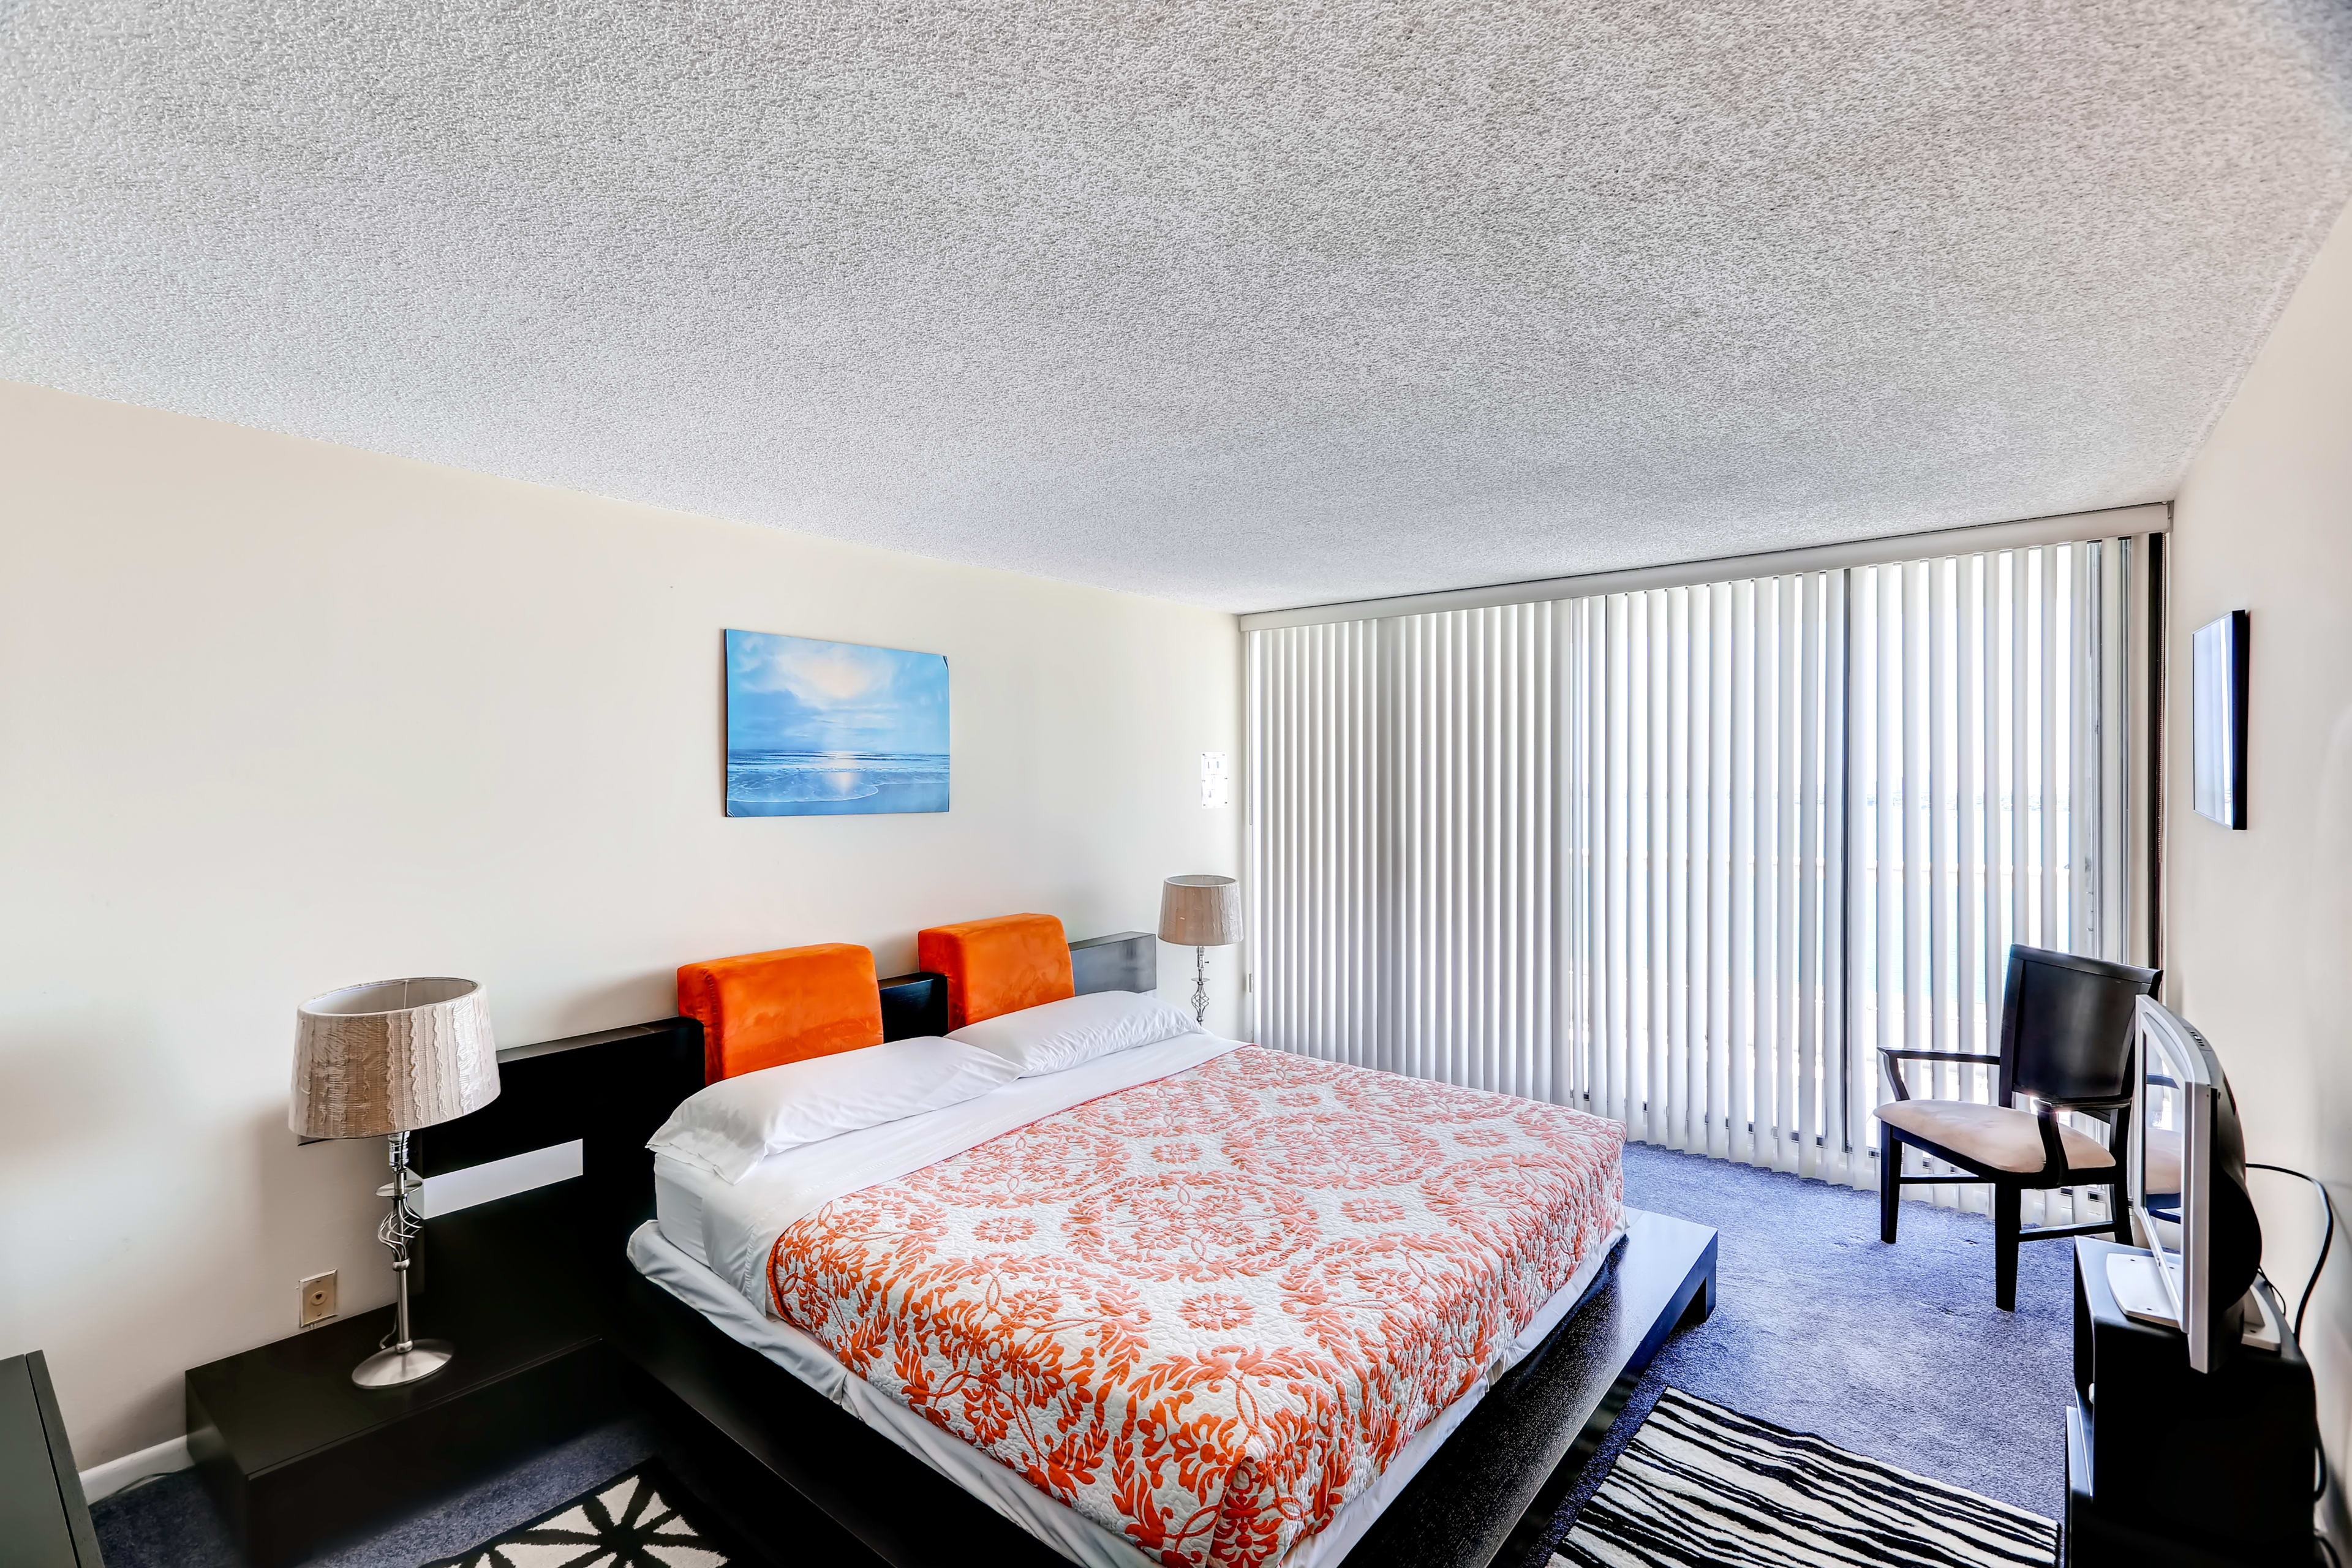 Sleep soundly in the spacious master bedroom.